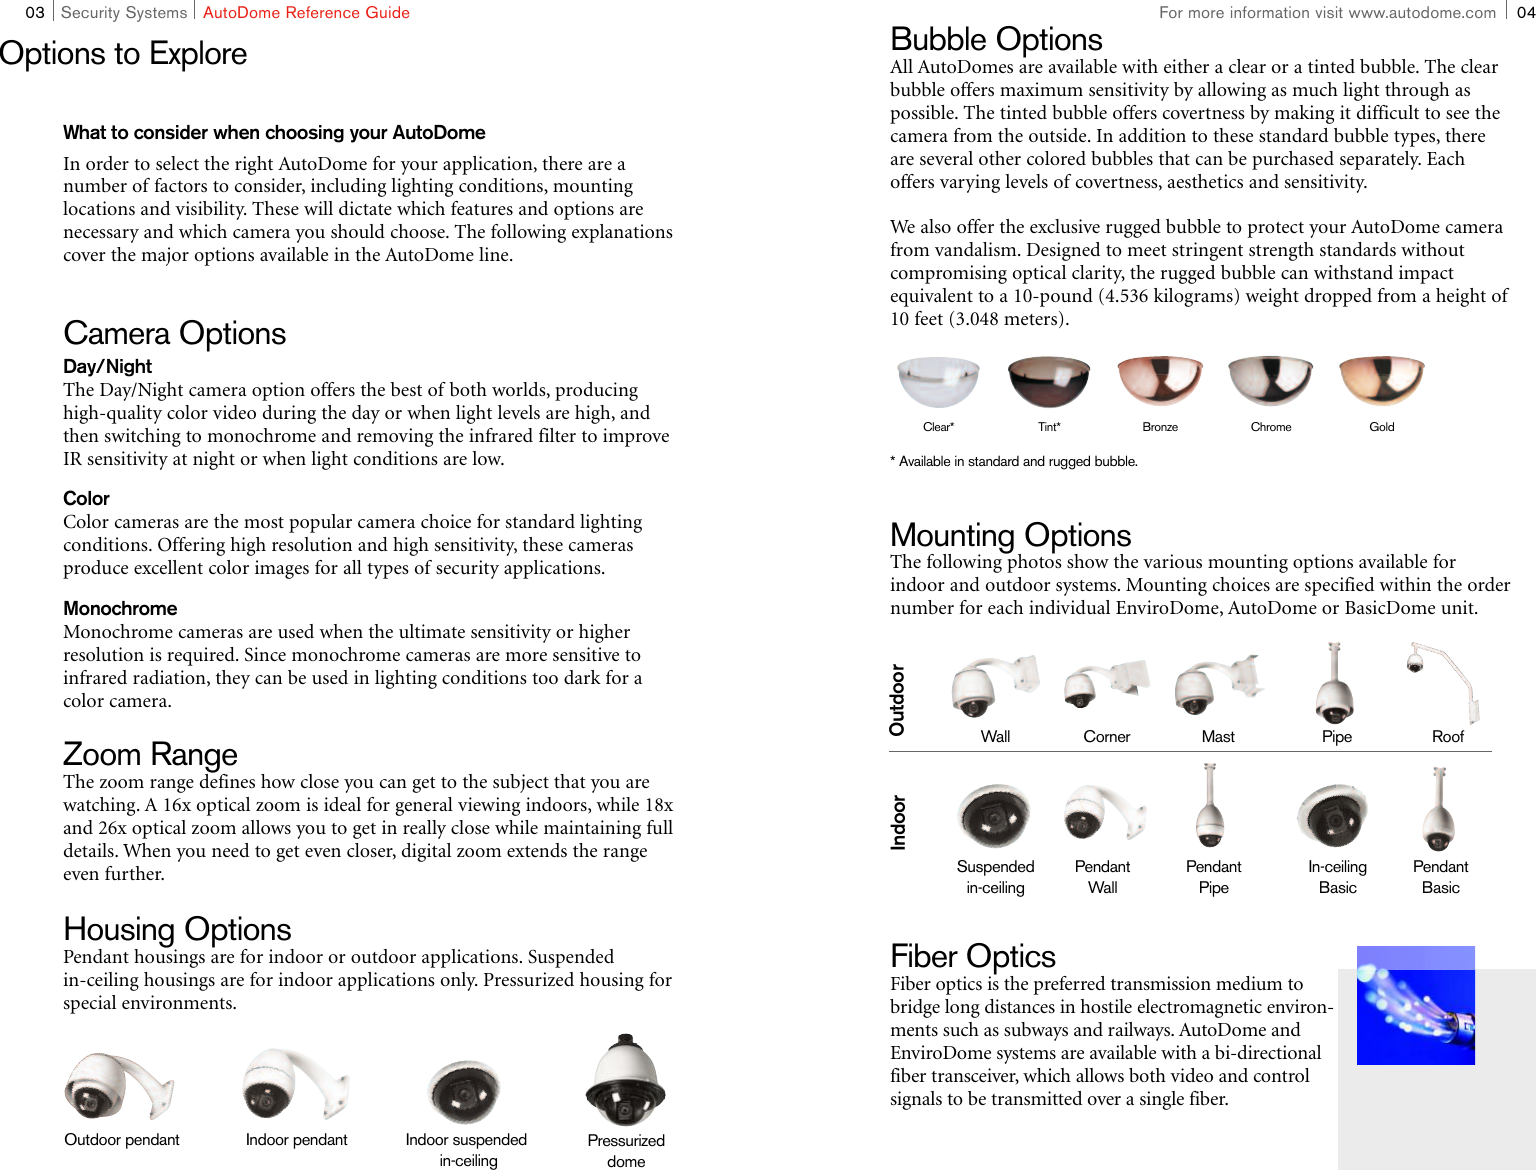 Boschhome bosch appliances security camera f01u002316c users manual page 3 of 12 boschhome boschhome bosch appliances security camera cheapraybanclubmaster Gallery